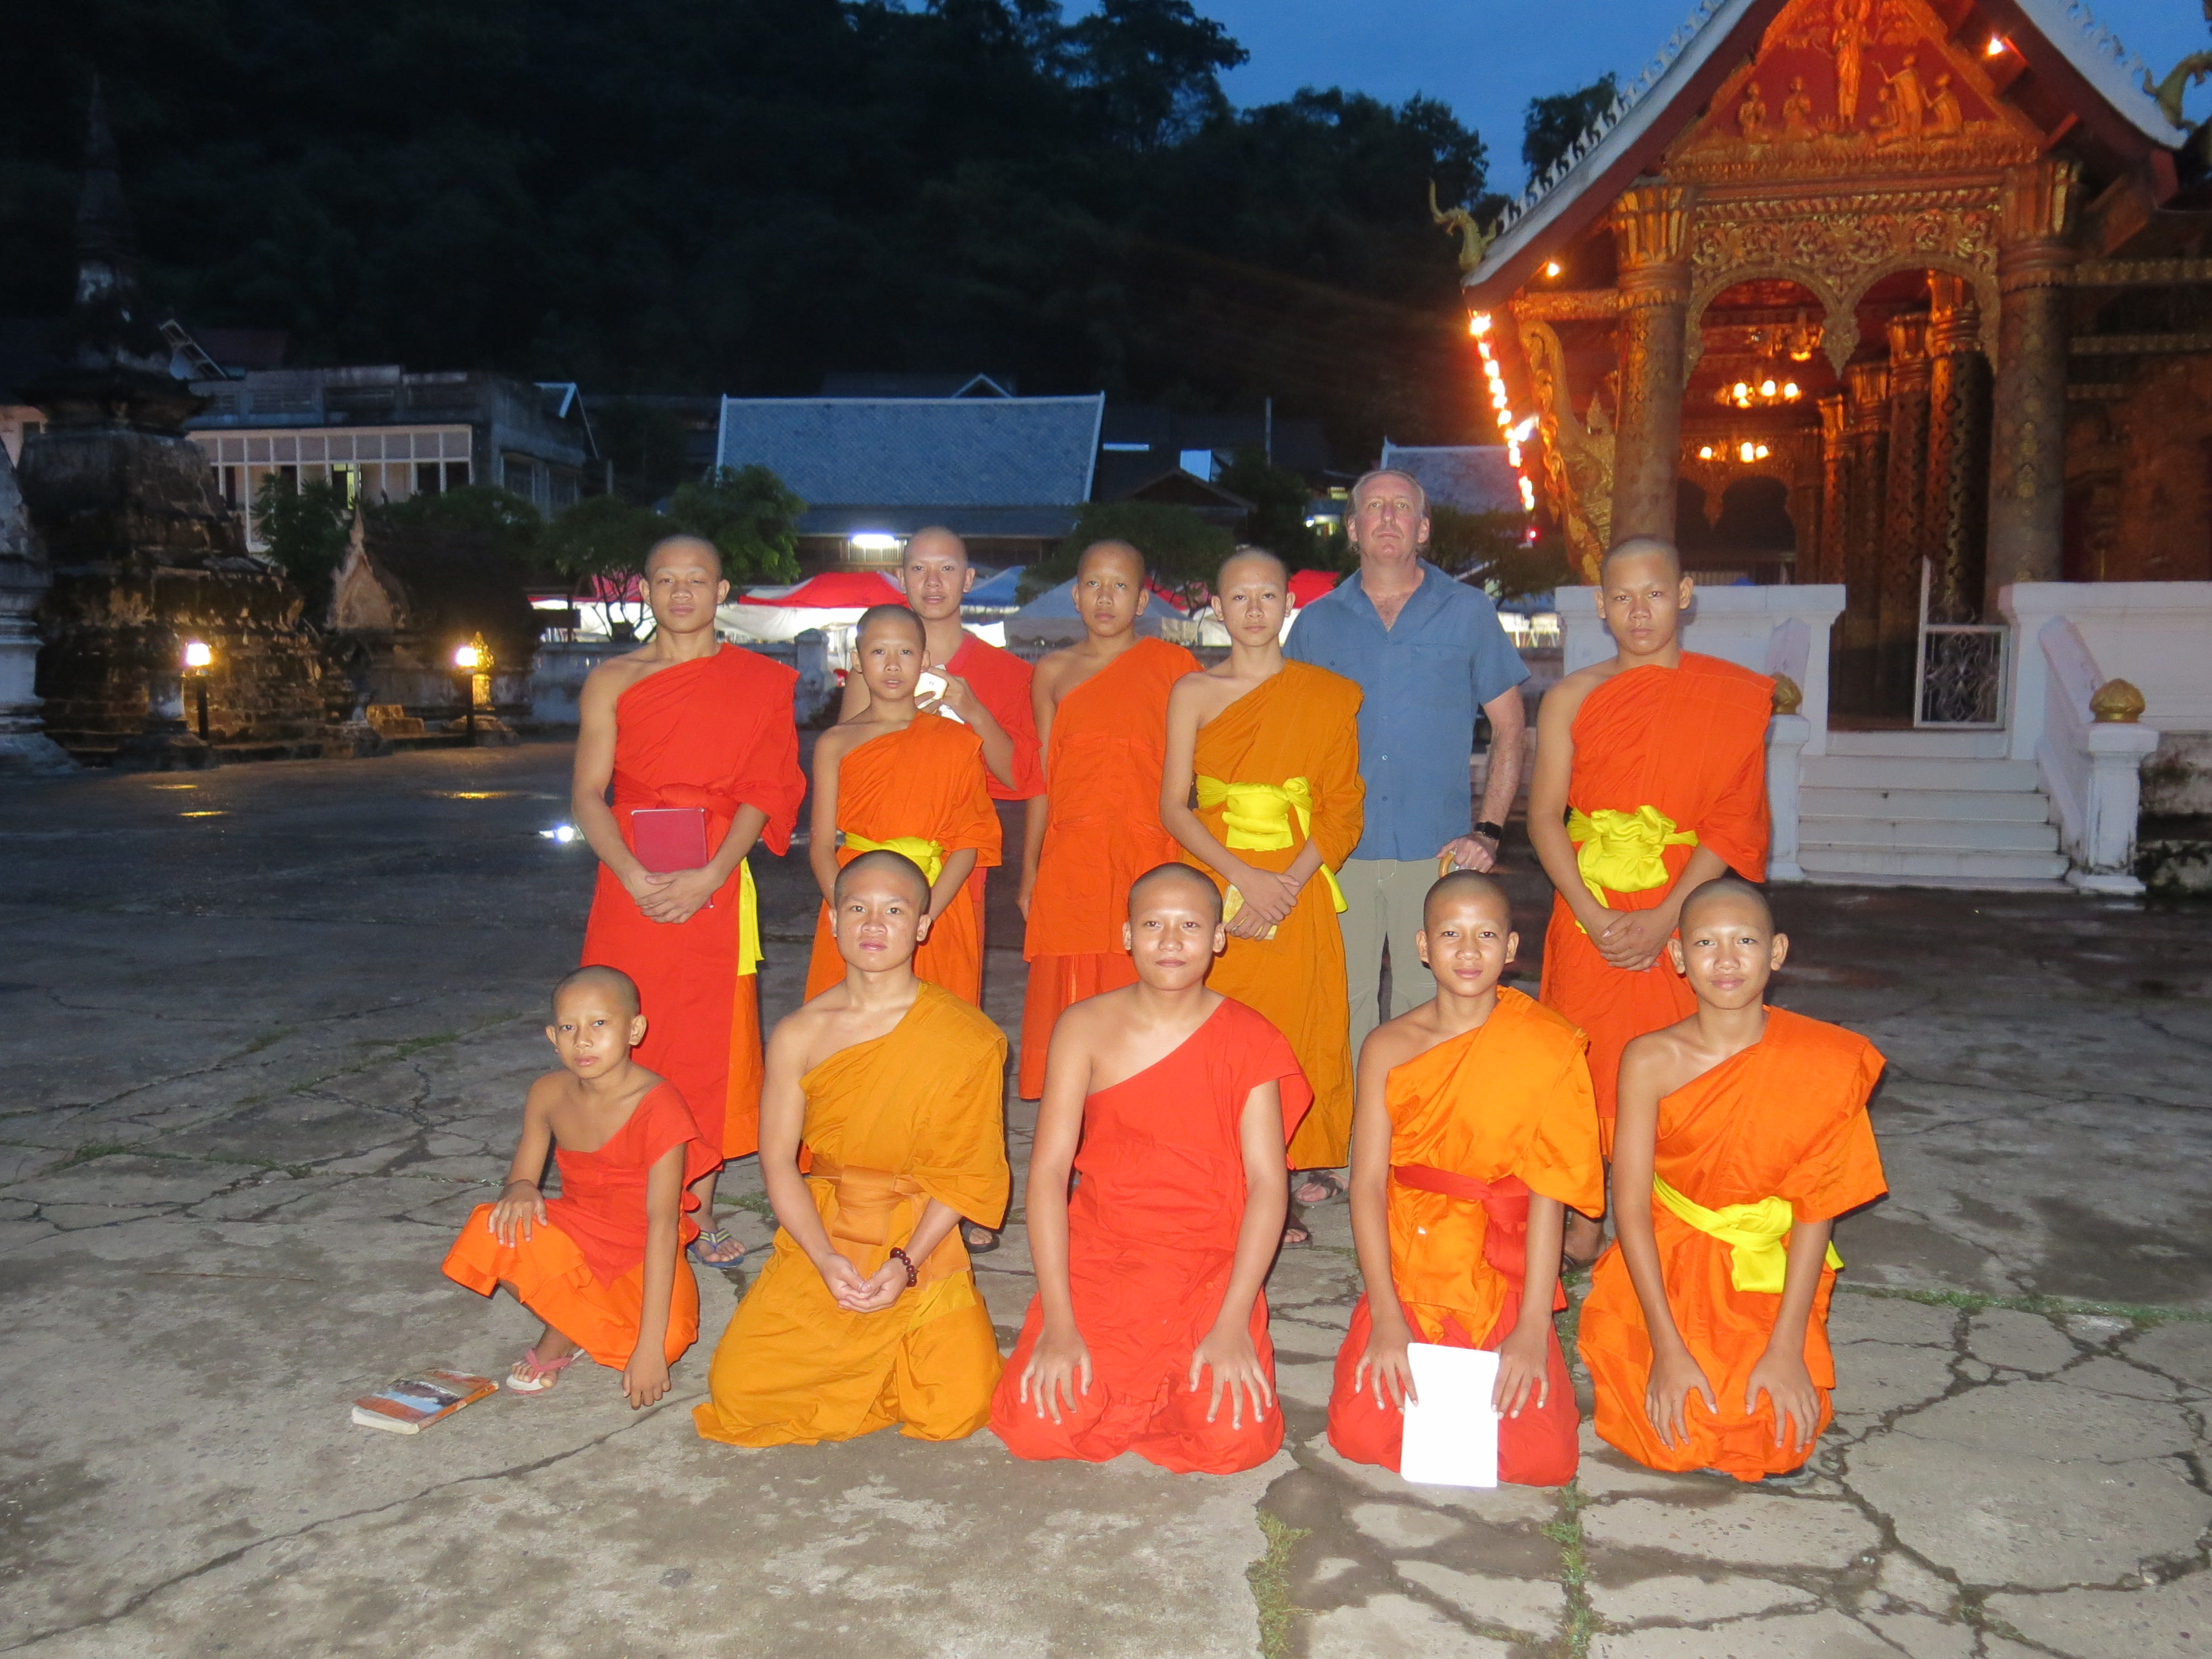 photo with the monks